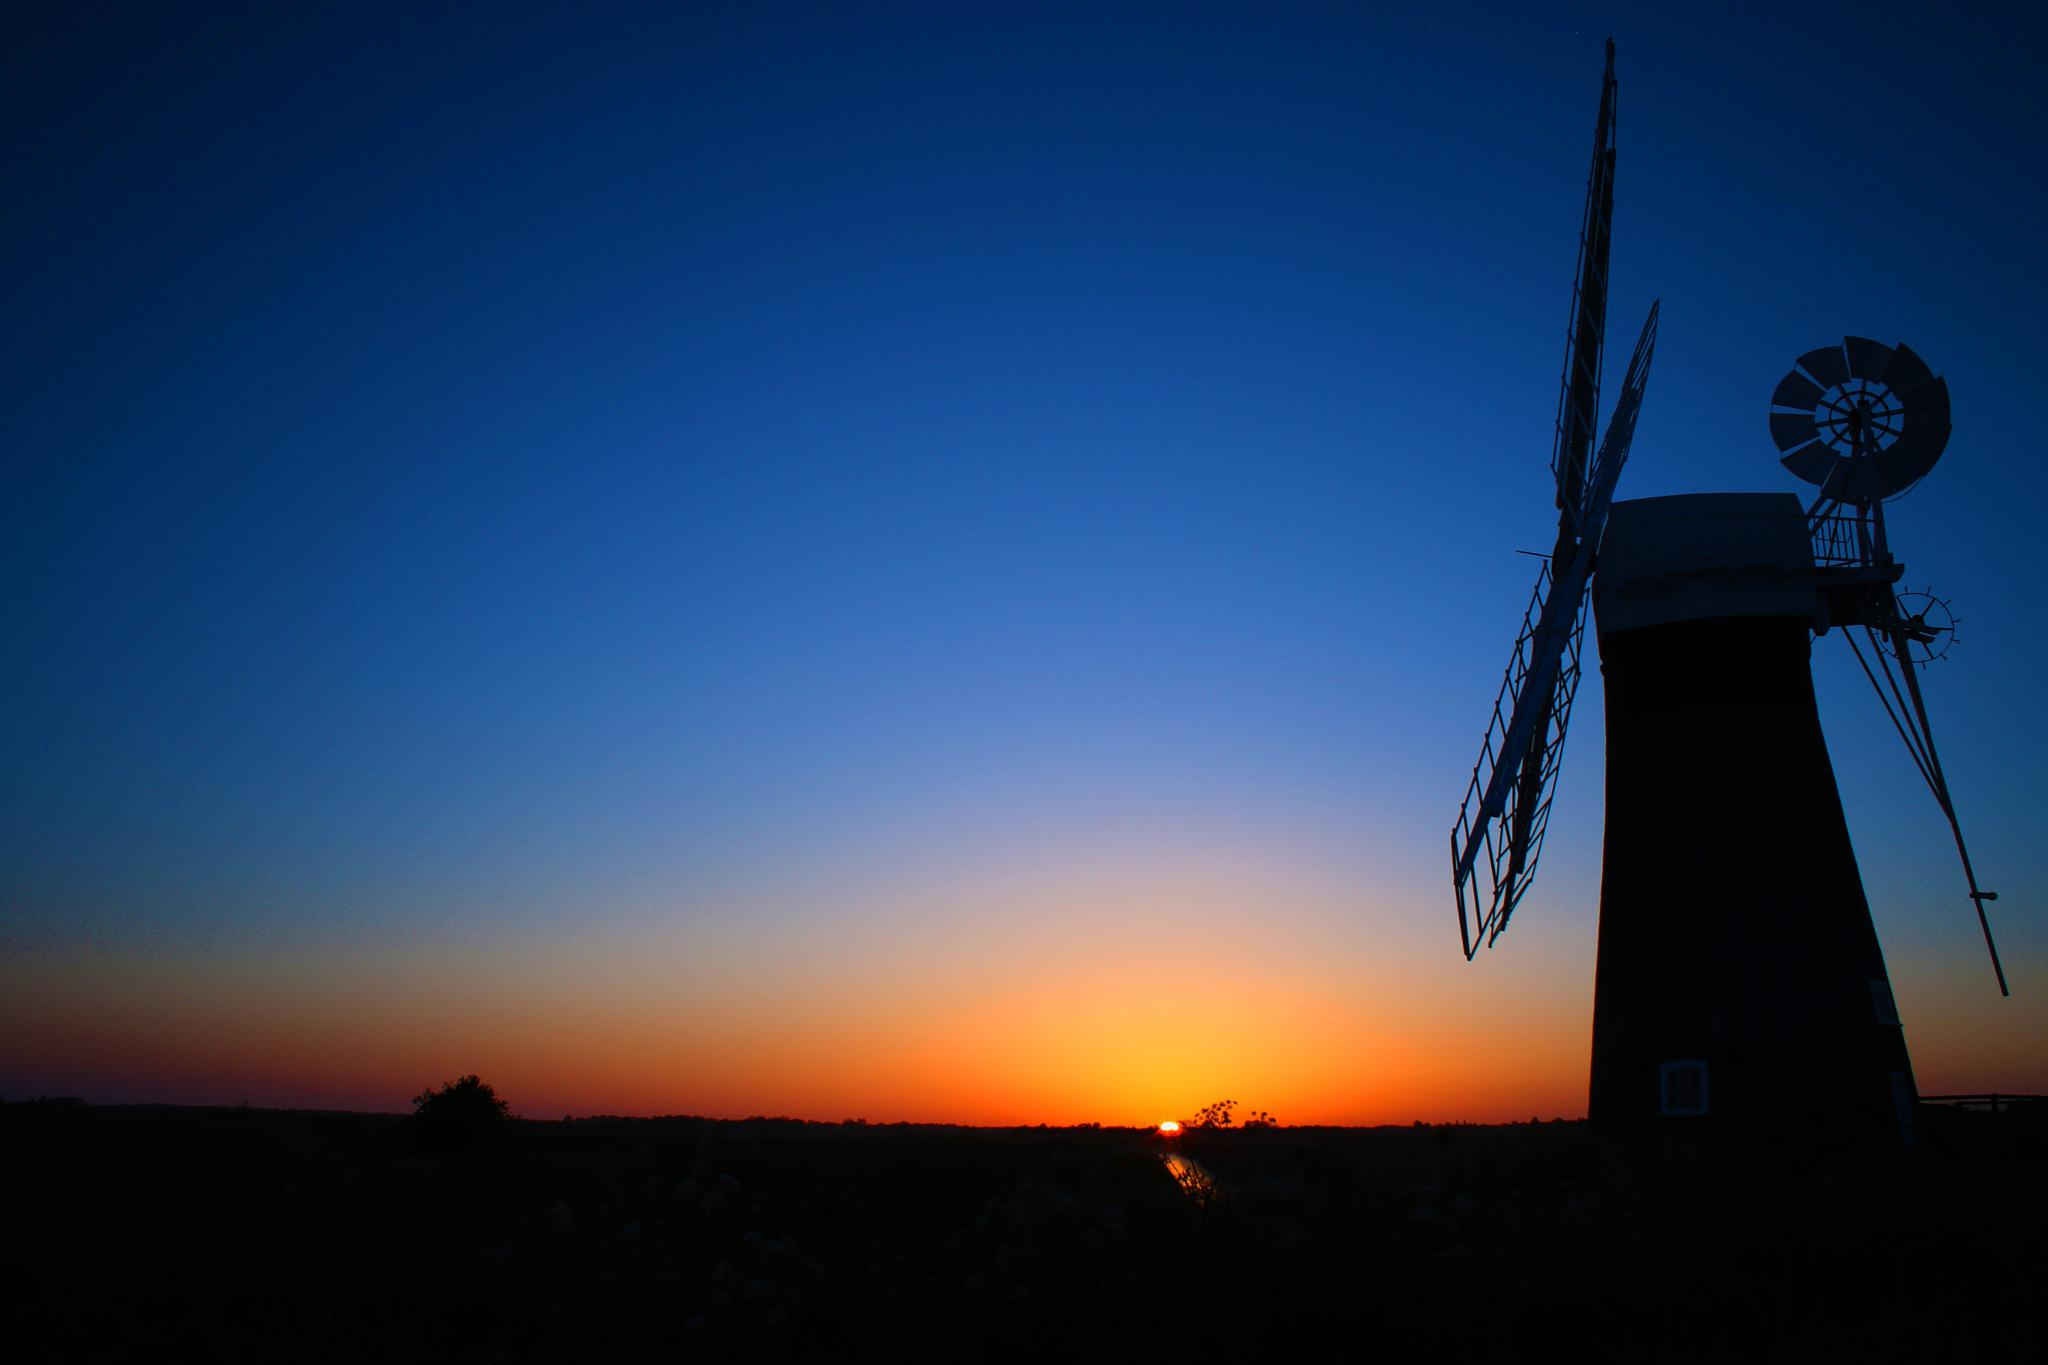 Windmill by Russell Waite